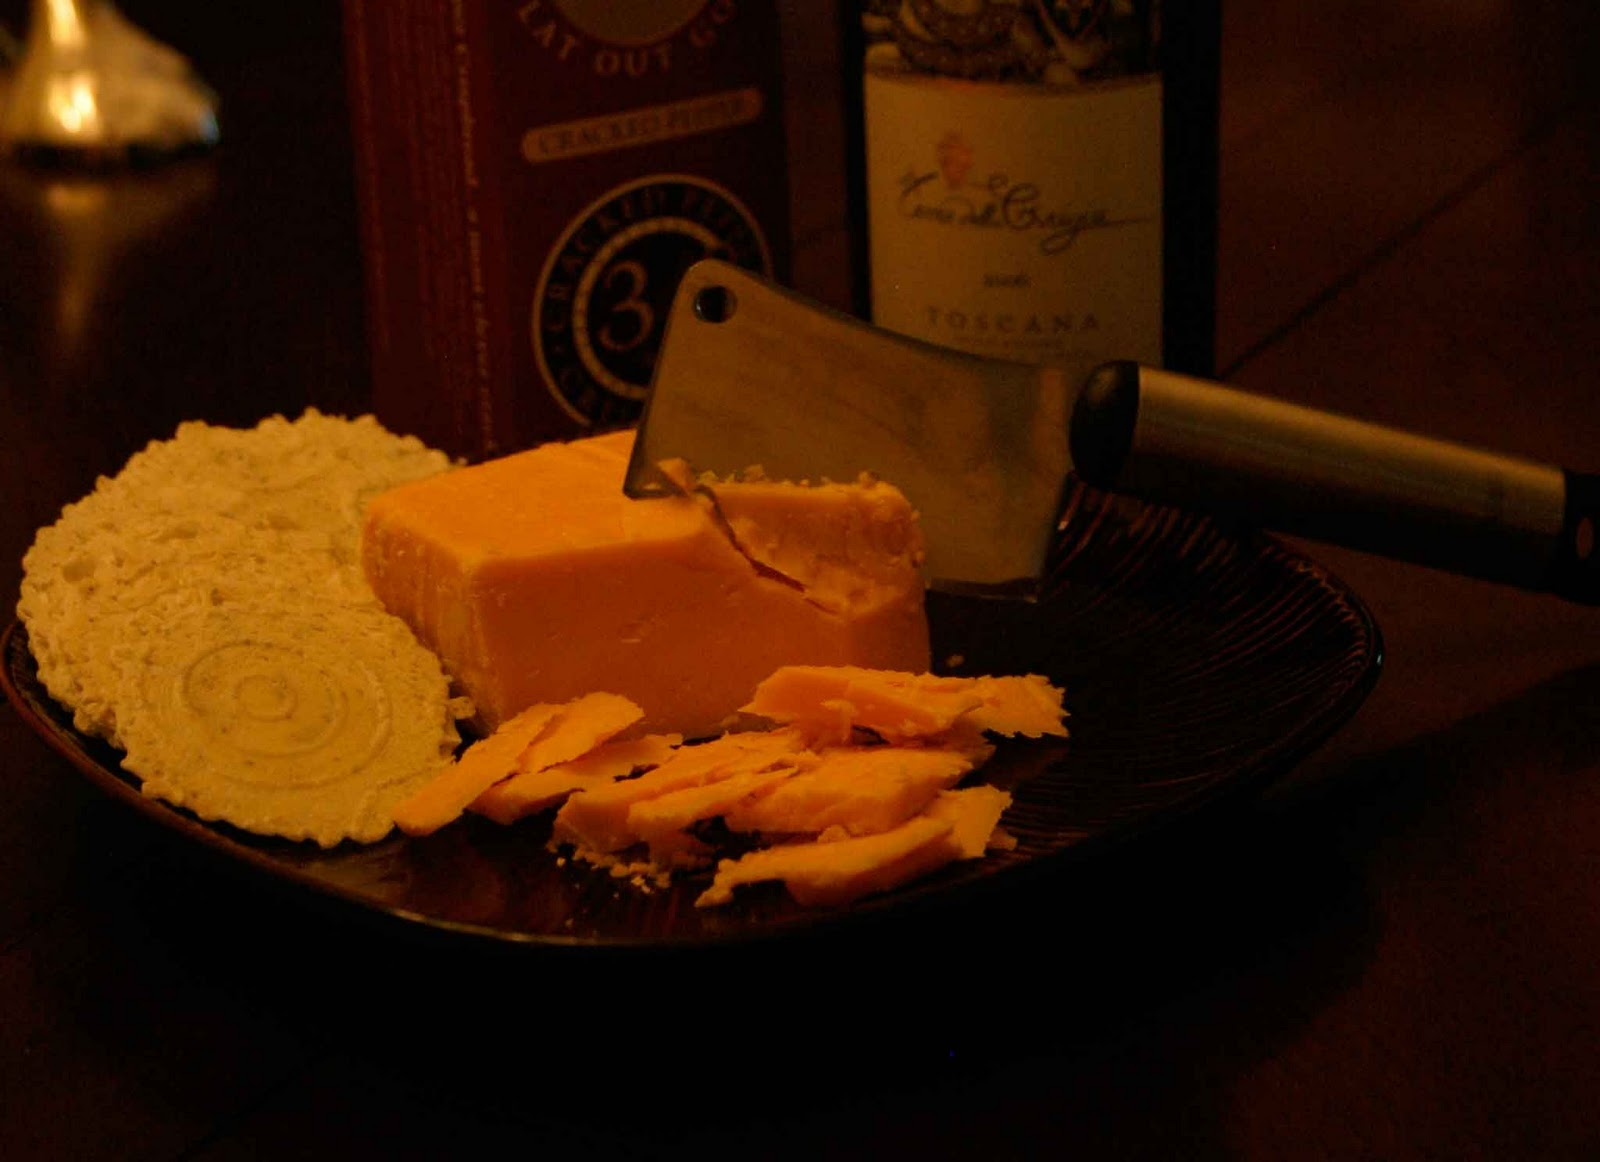 An eat 39 n man december 2011 - Can i eat port salut cheese when pregnant ...